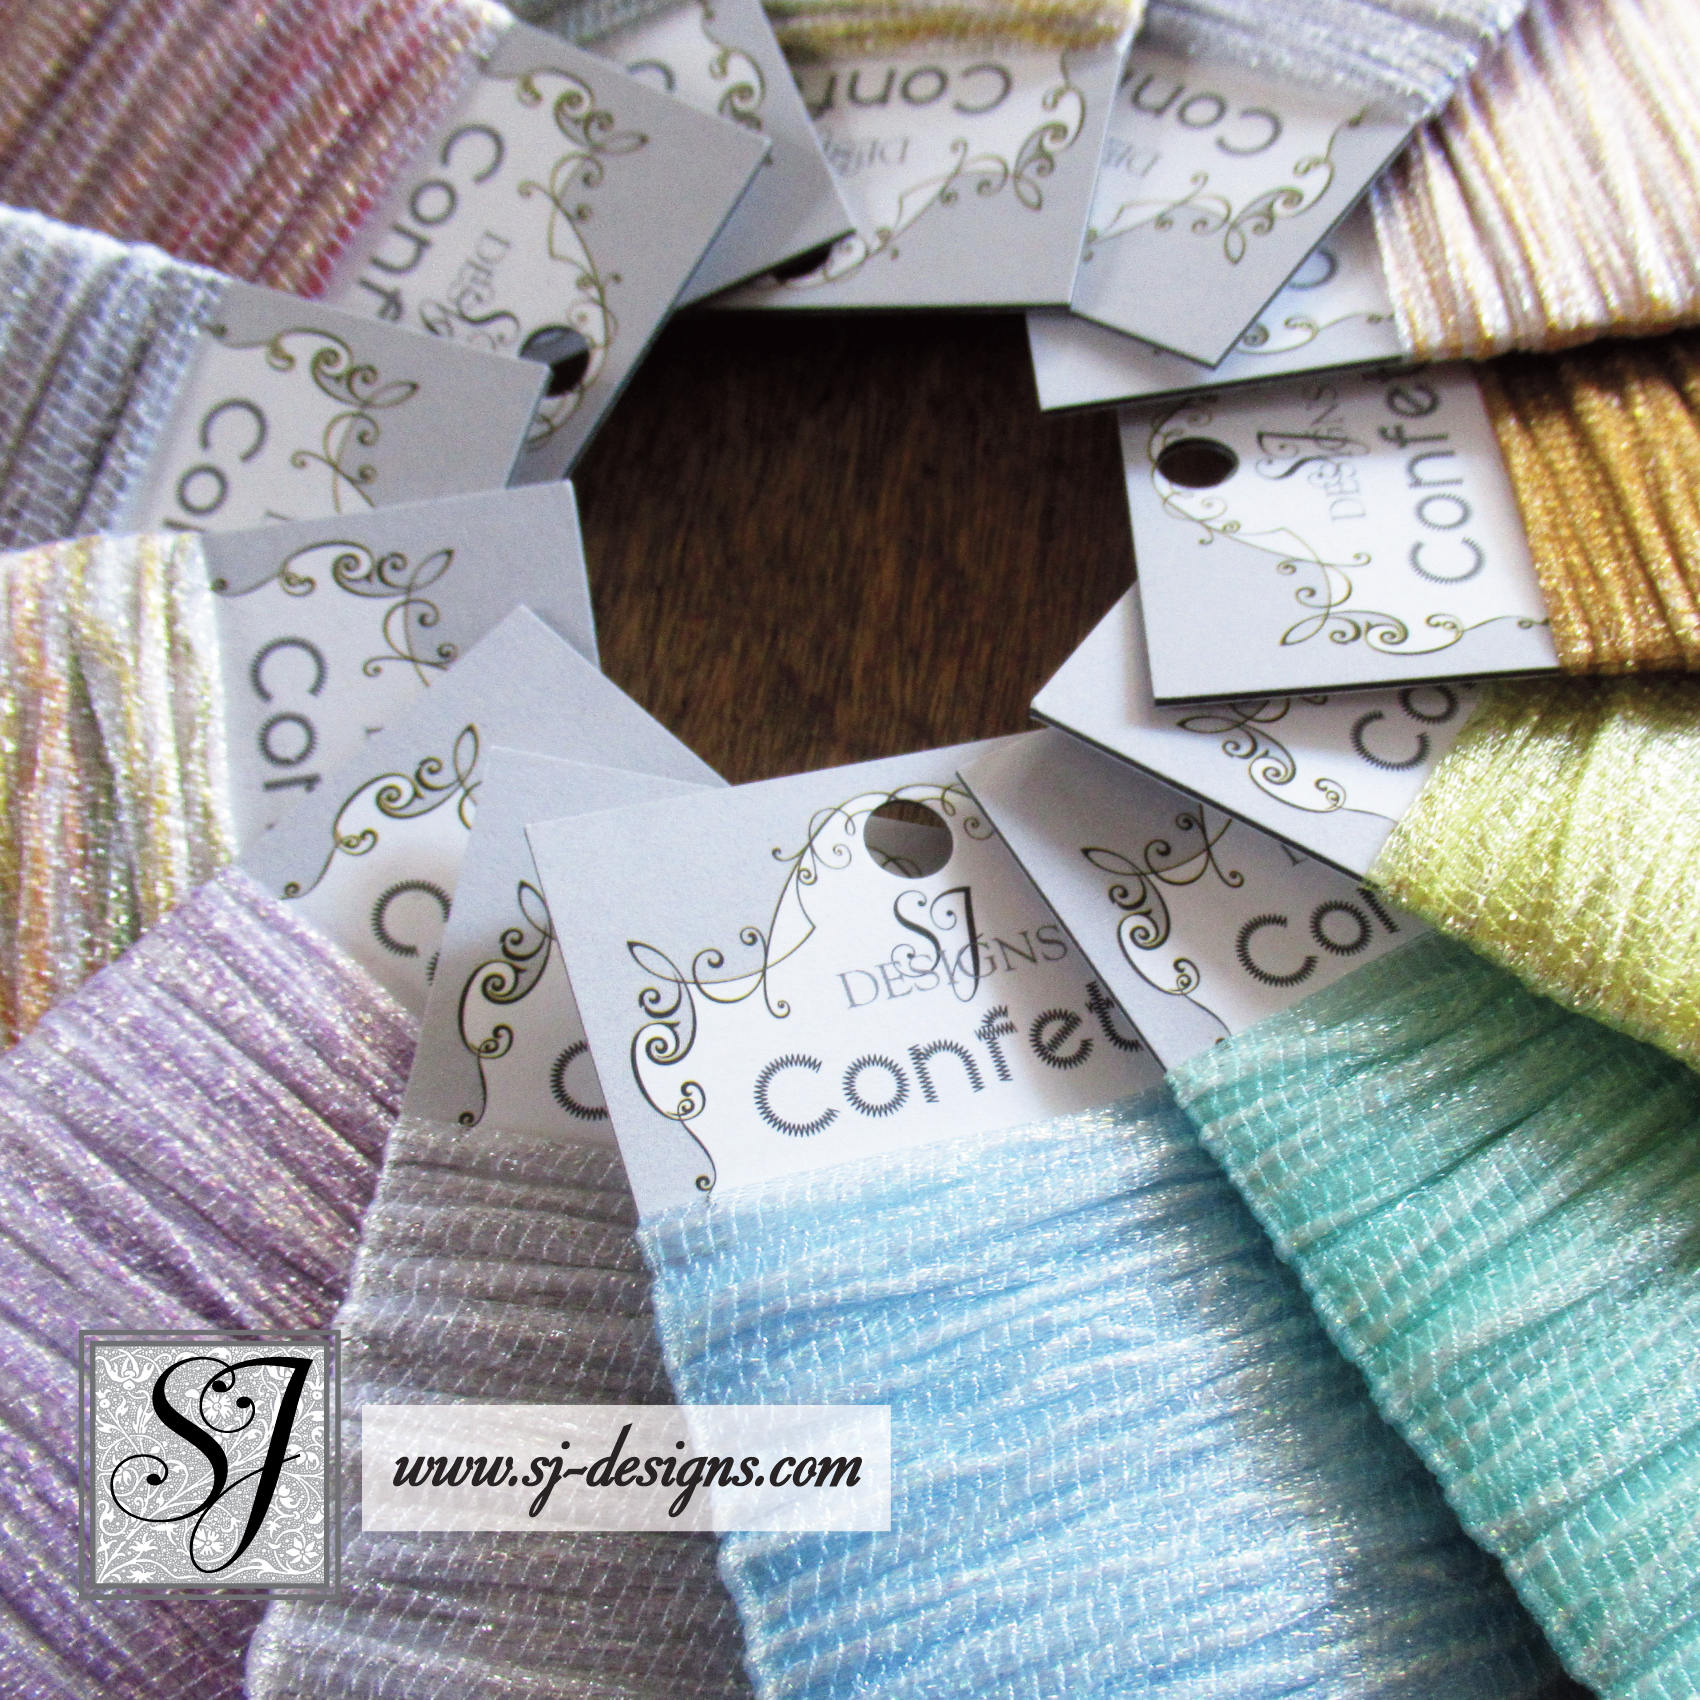 SJ Designs Confetti Yarn